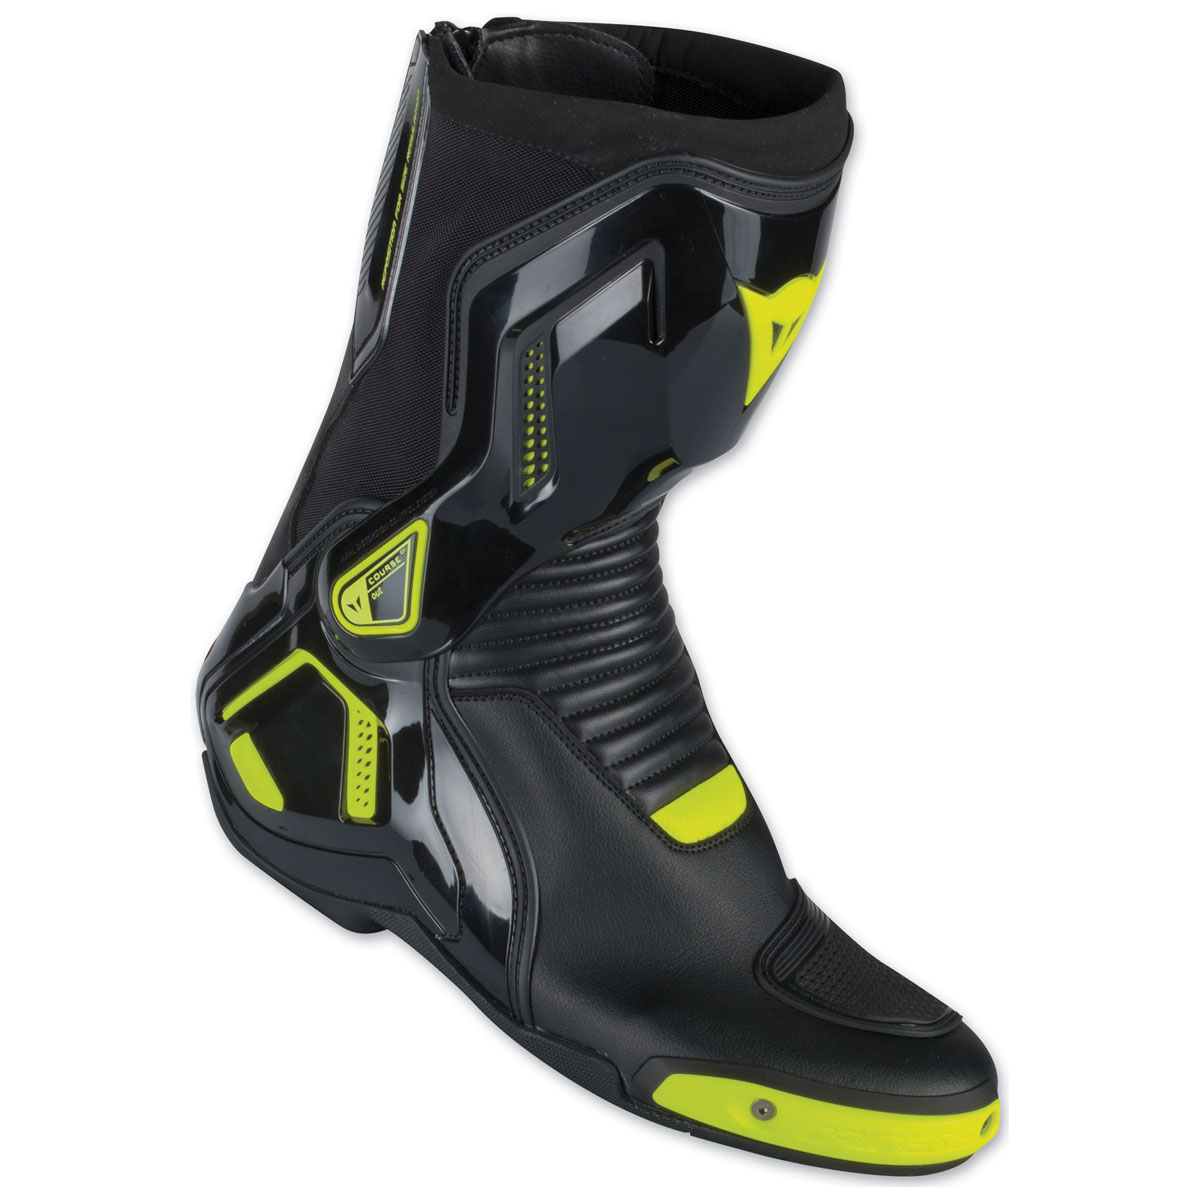 Dainese Course D1 Out Black/Fluo Yellow Boots